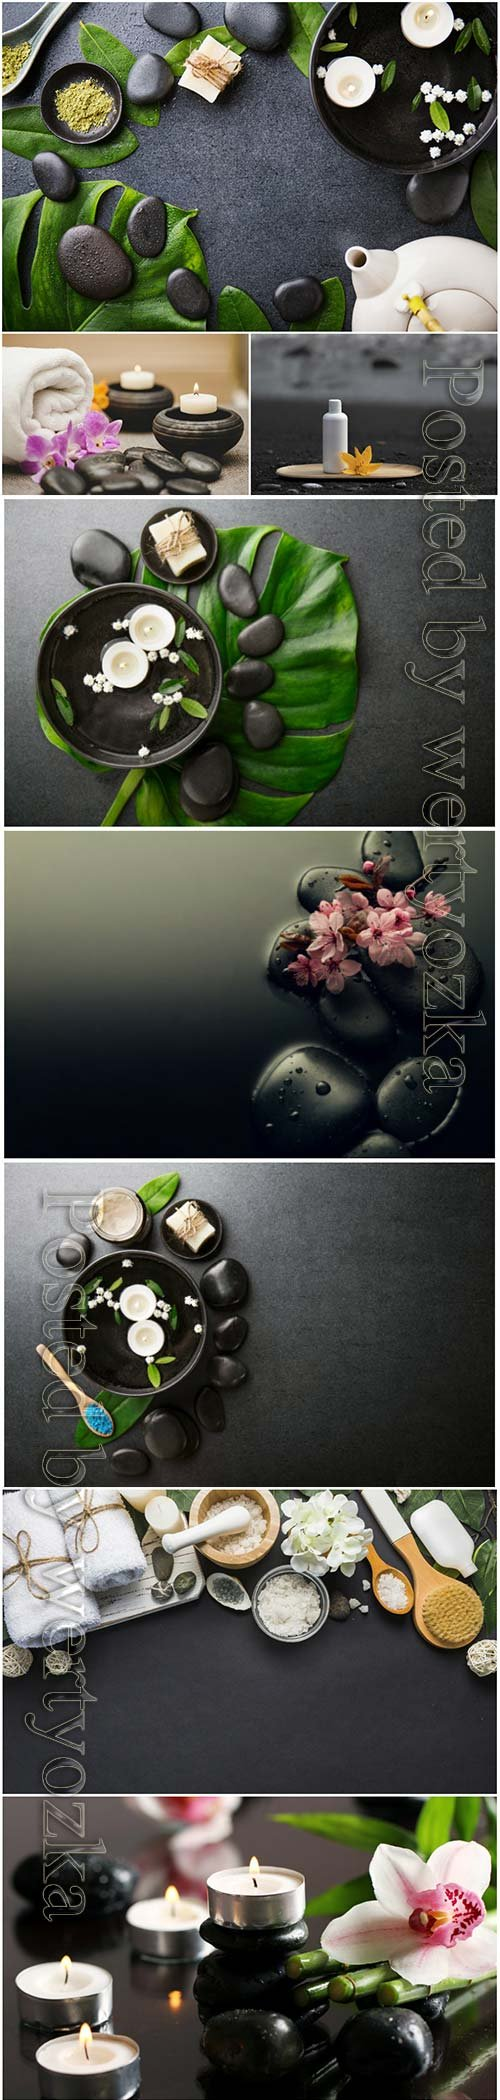 Spa backgrounds with orchids and spa stones